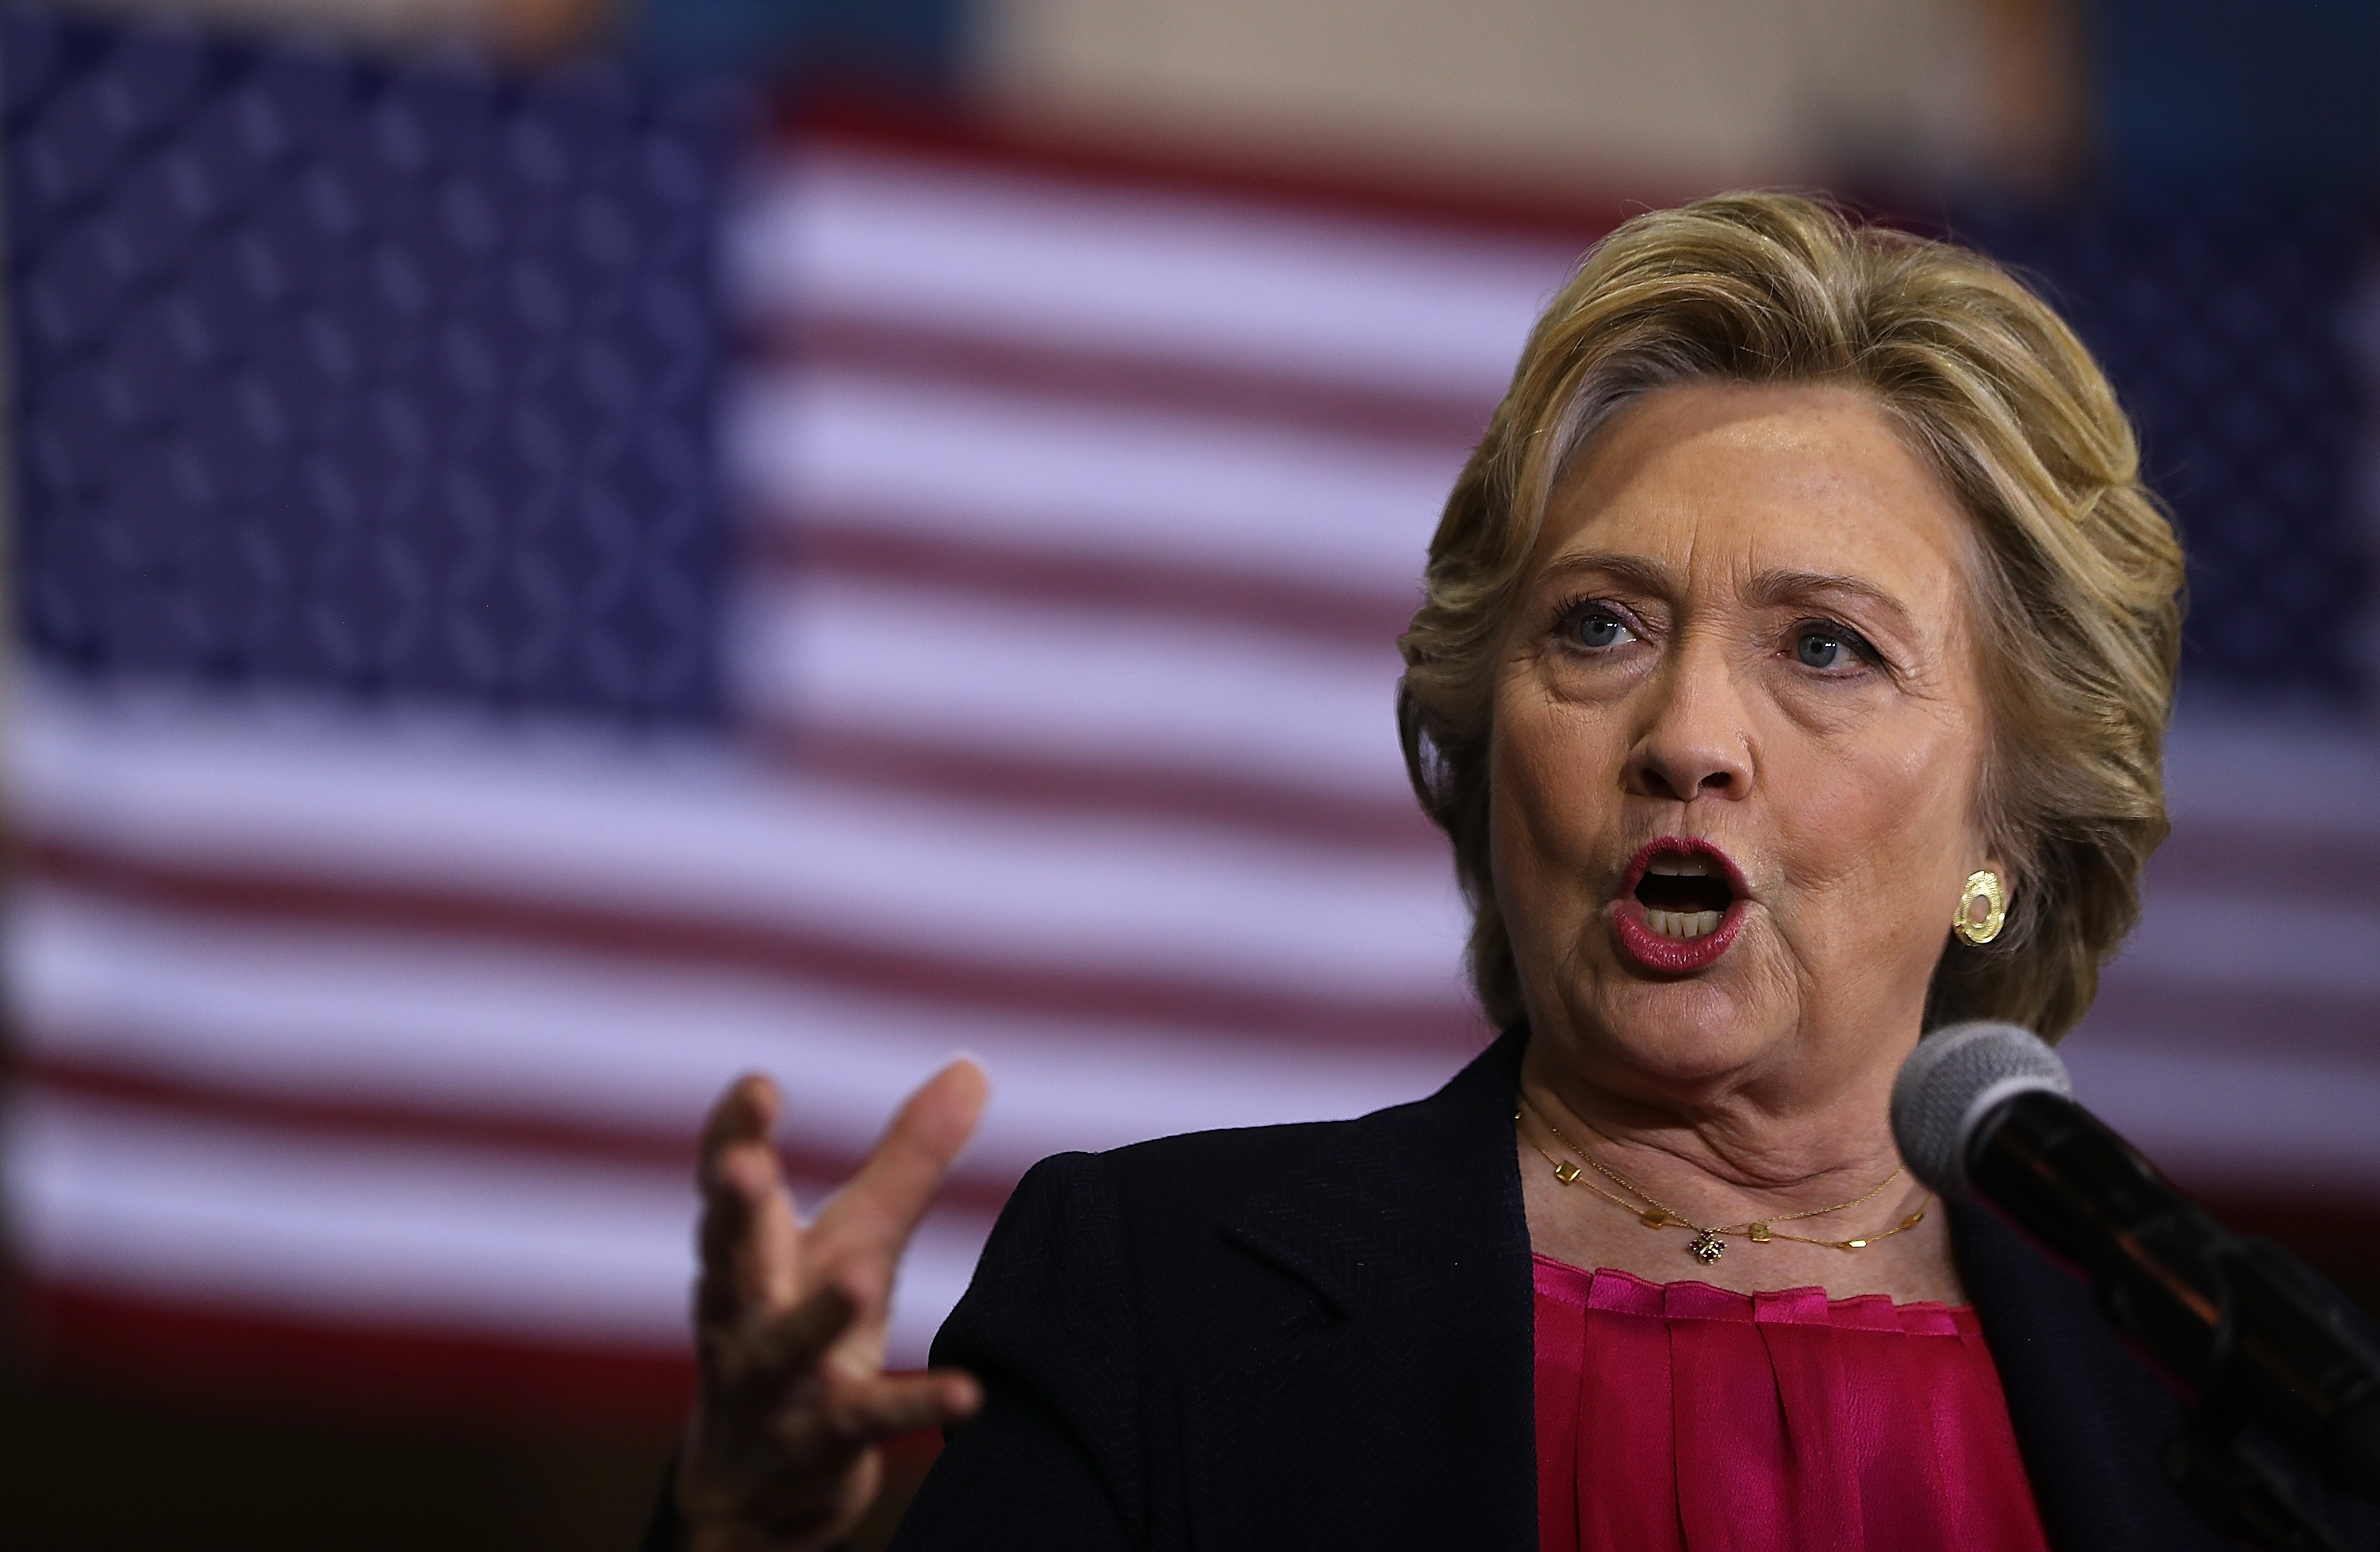 Unions which helped Hillary Clinton win her U.S. Senate race in New York in 2000 are now sending members to battleground states to get out the vote for her in this year's presidential contest. (Getty Images)